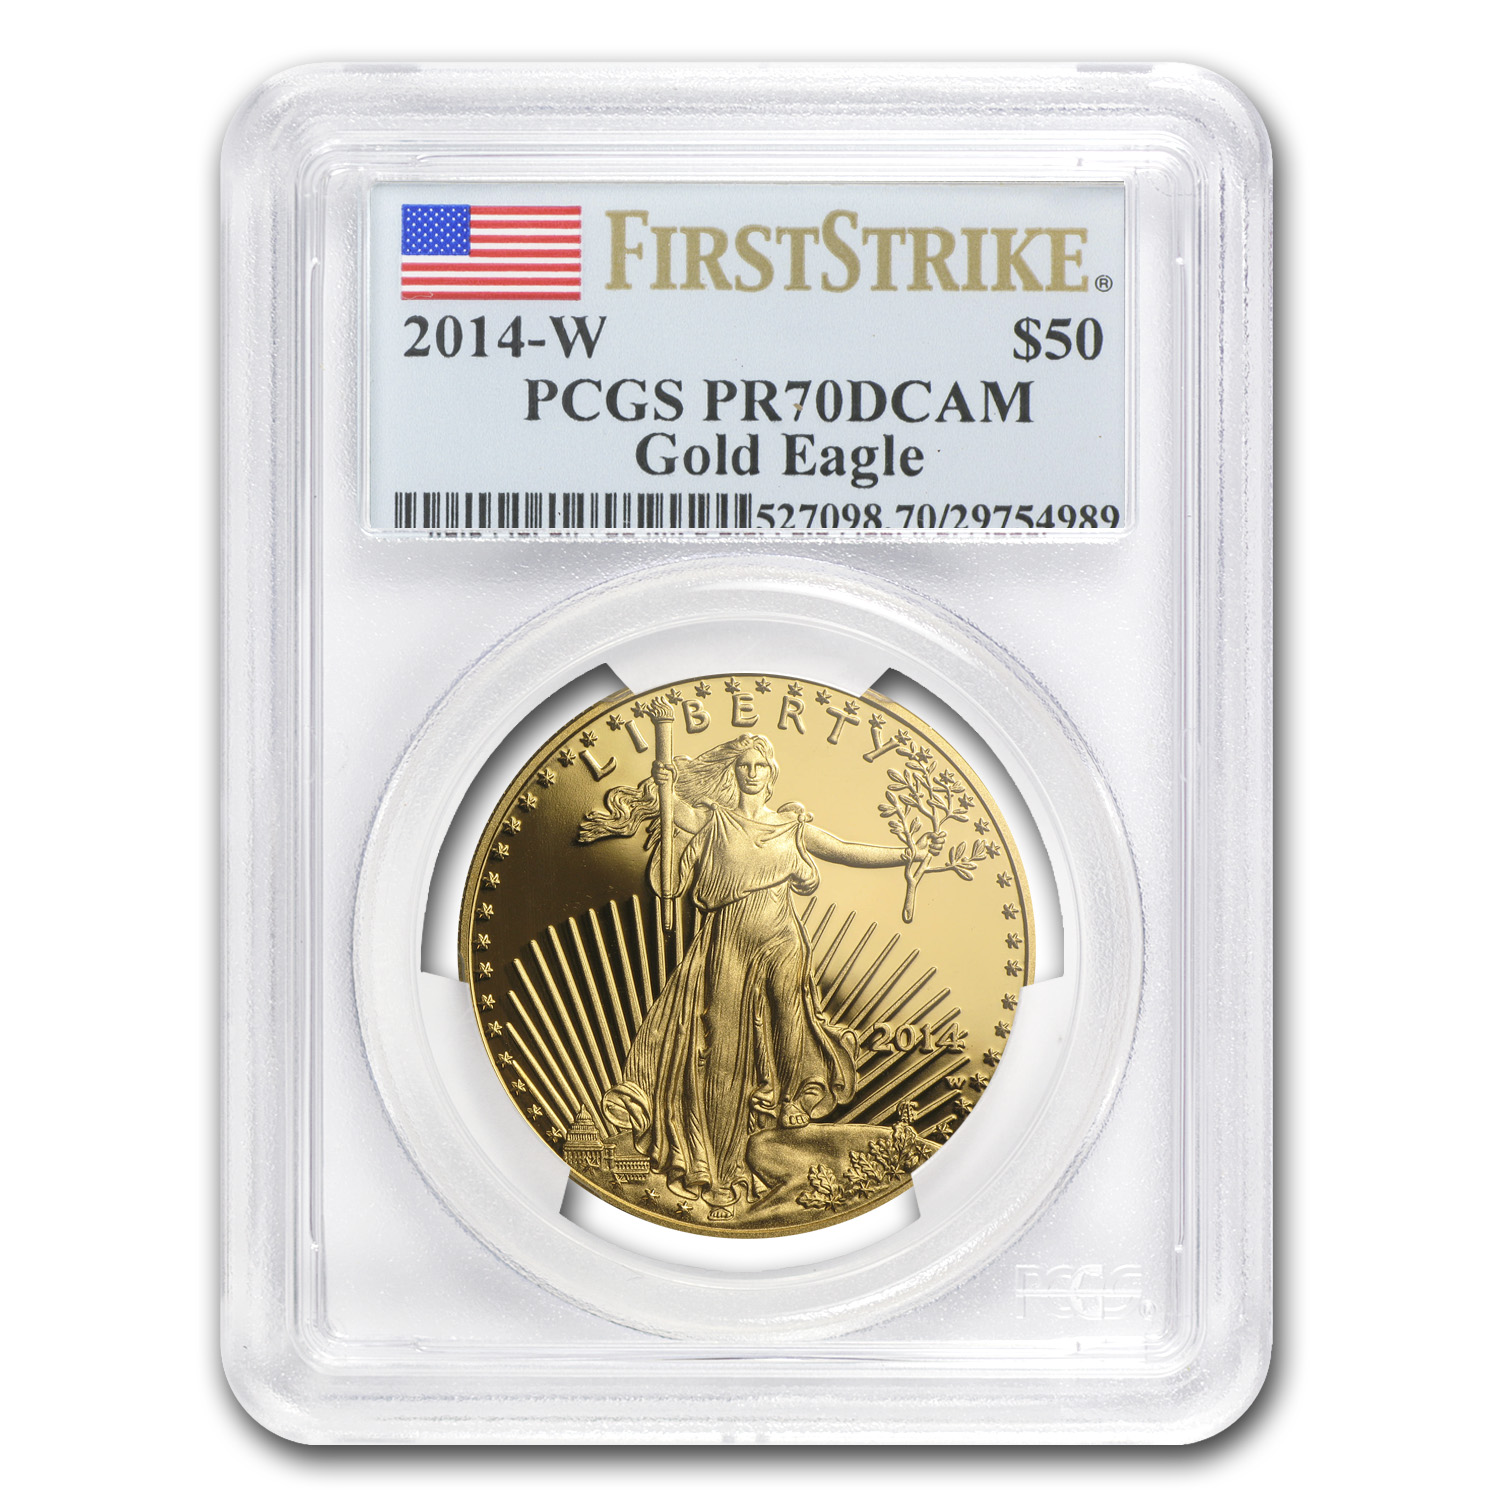 2014-W 1 oz Proof Gold American Eagle PR-70 PCGS - First Strike